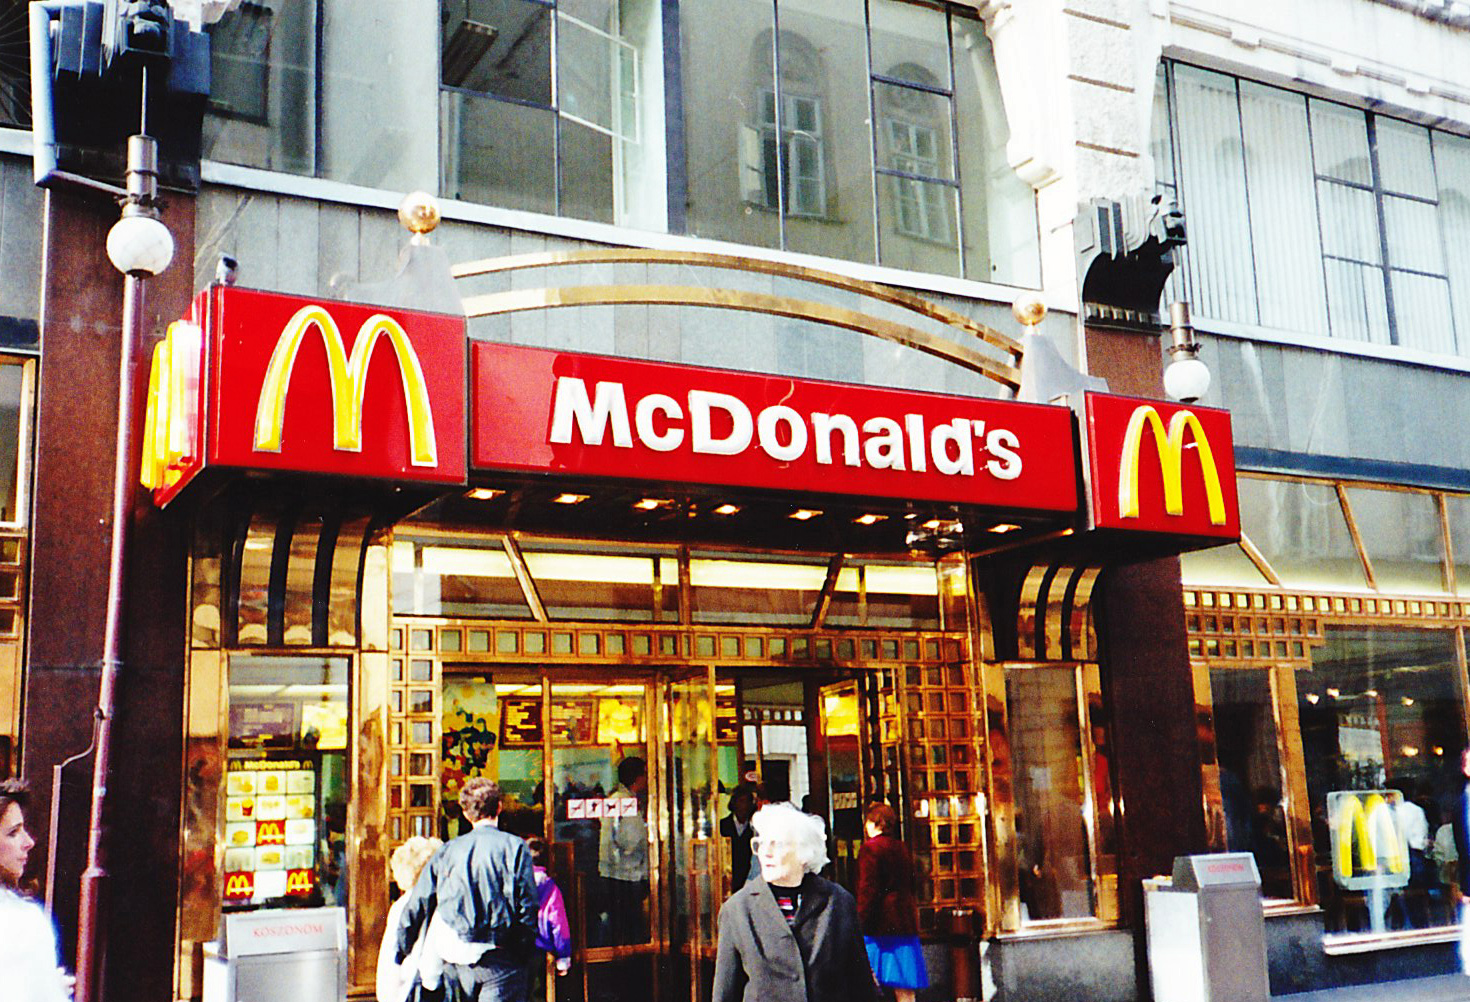 McDonald's in Budapest